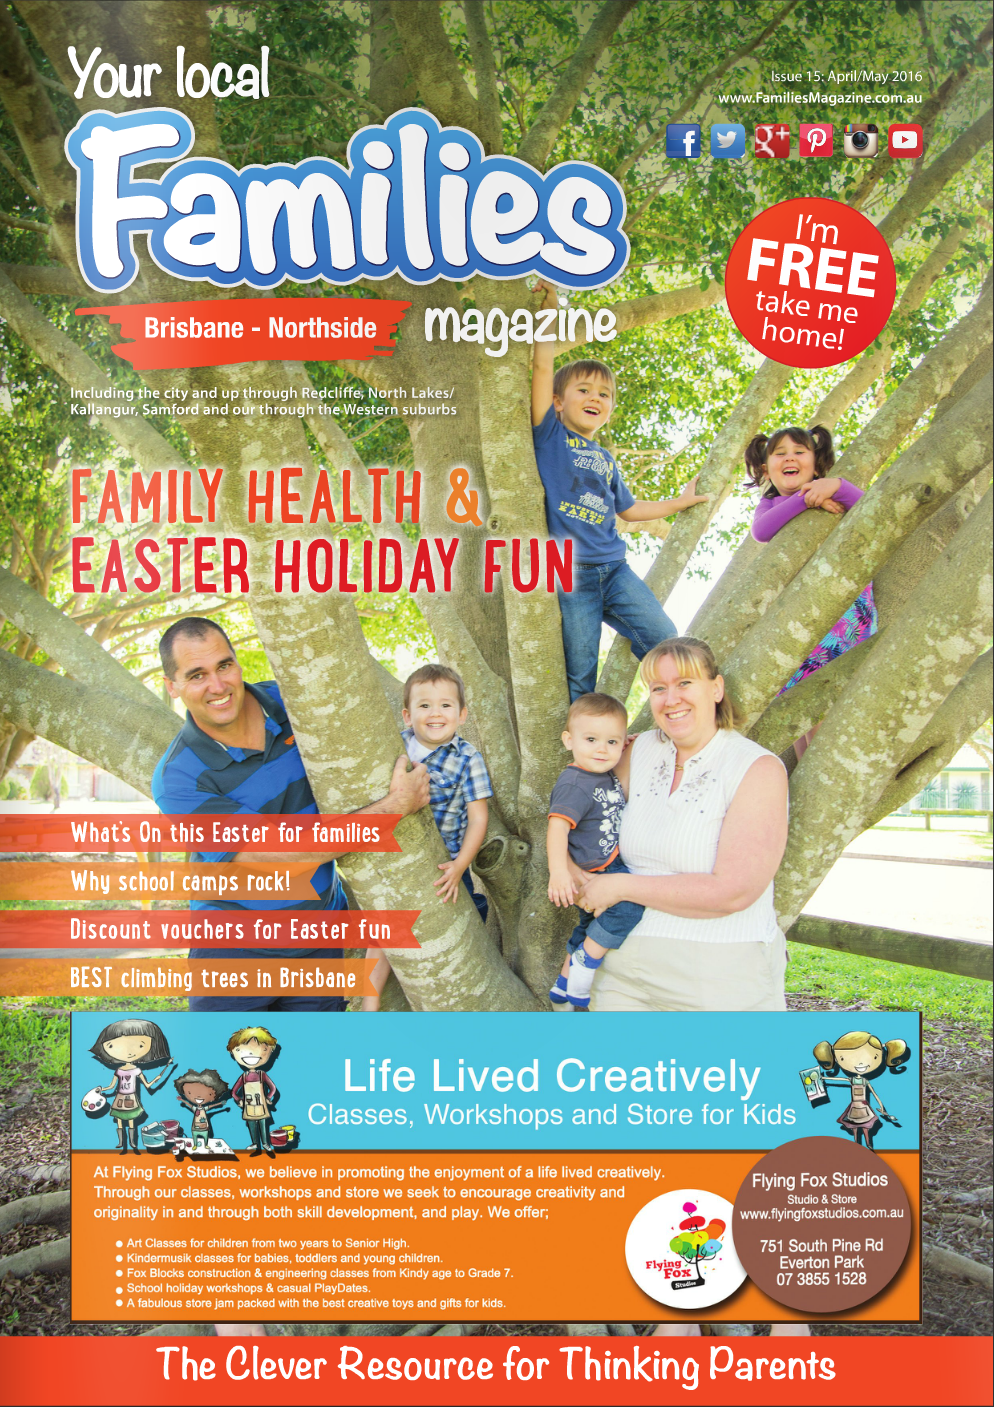 Issue 15 families magazine brisbane family health easter issue 15 families magazine brisbane family health easter negle Images